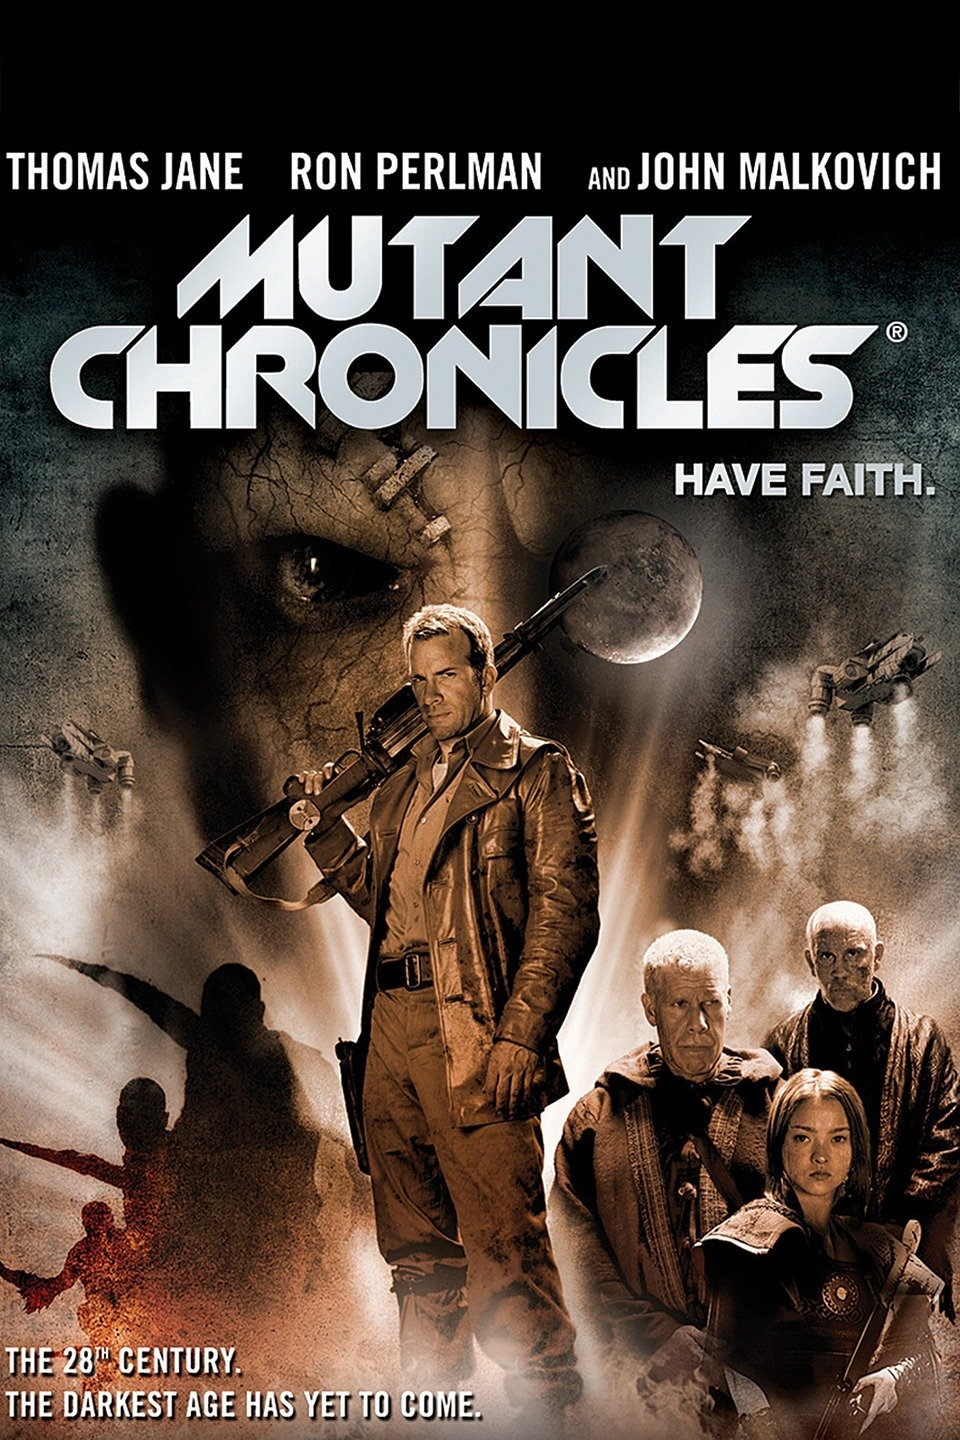 Mutant Chronicles-Mutant Chronicles